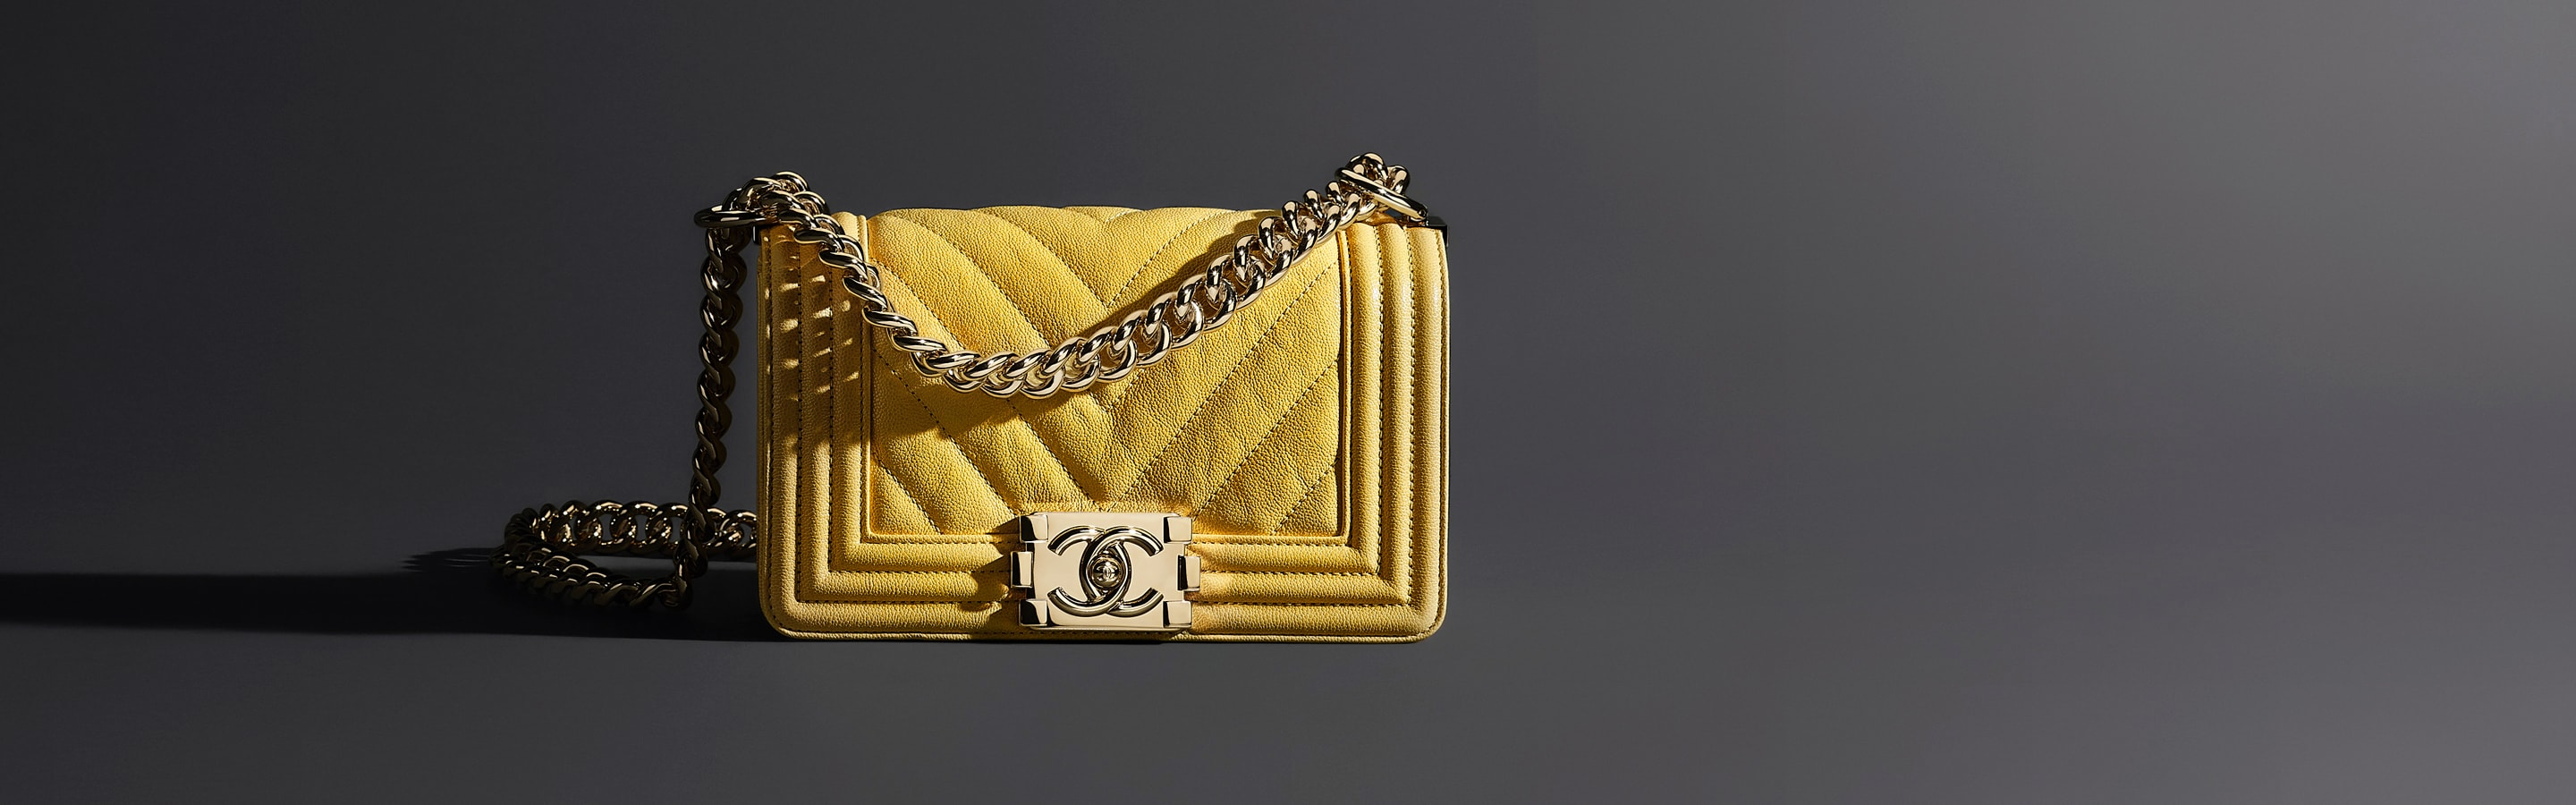 BOY CHANEL - Handbags - CHANEL e43d74be2069c